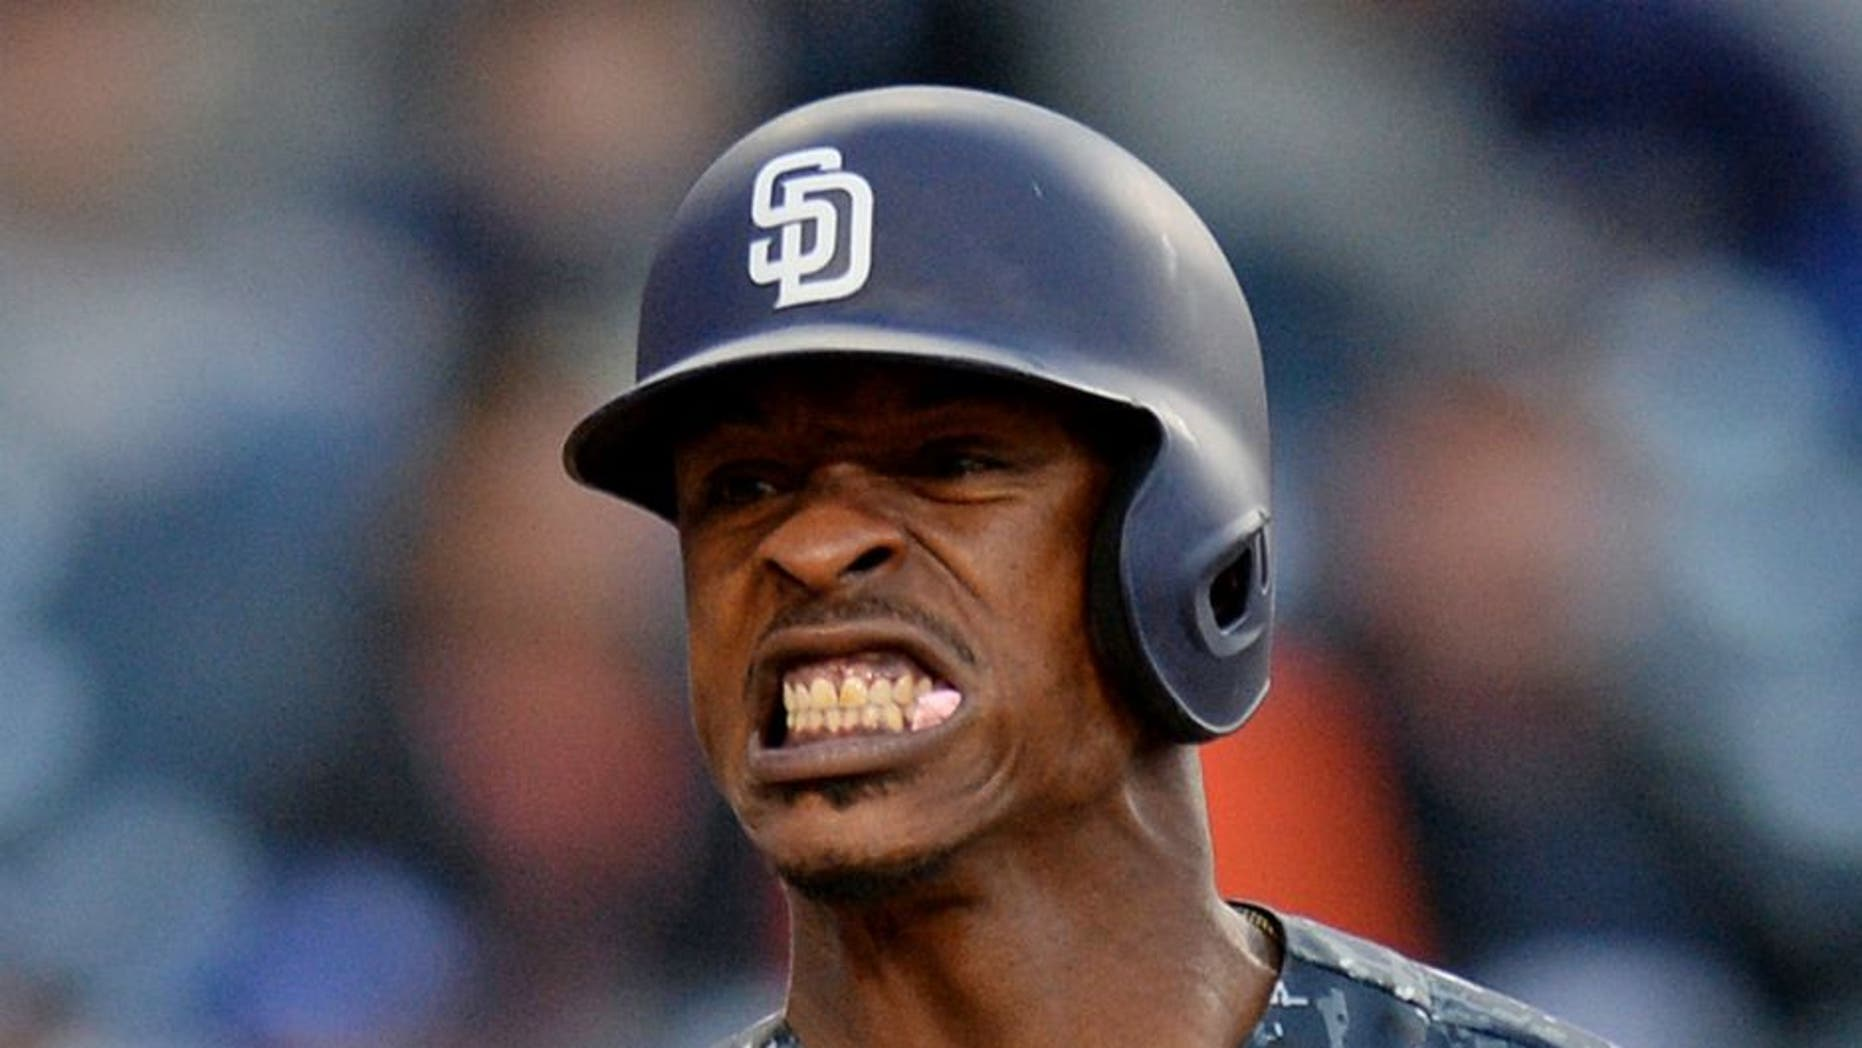 May 22, 2016; San Diego, CA, USA; San Diego Padres left fielder Melvin Upton Jr. (2) reacts during a 16th inning at bat against the Los Angeles Dodgers at Petco Park. Mandatory Credit: Jake Roth-USA TODAY Sports